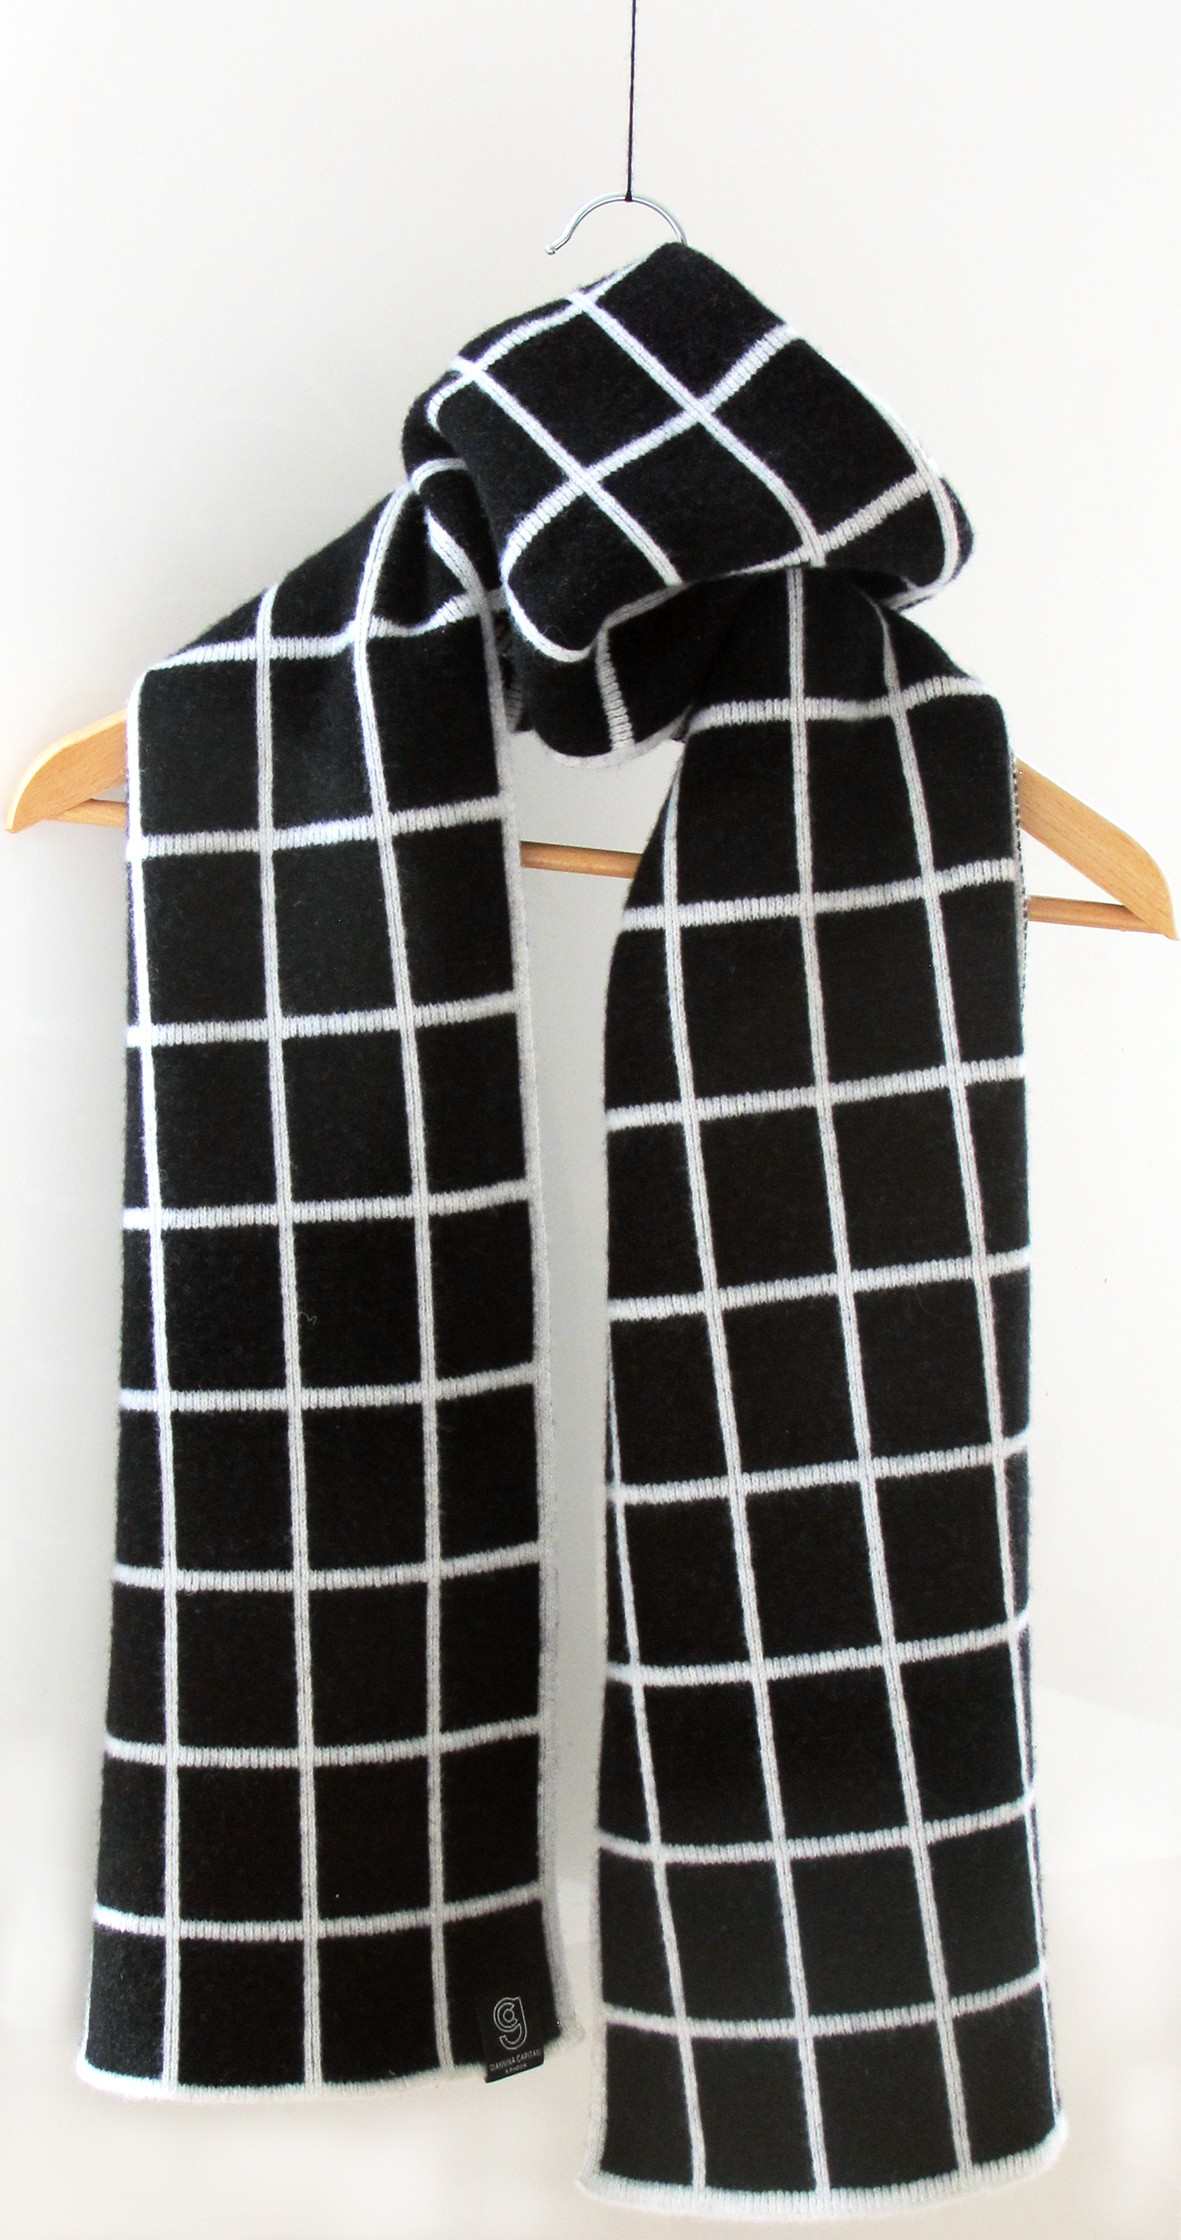 Grid scarf (wide) black and white by giannina capitani